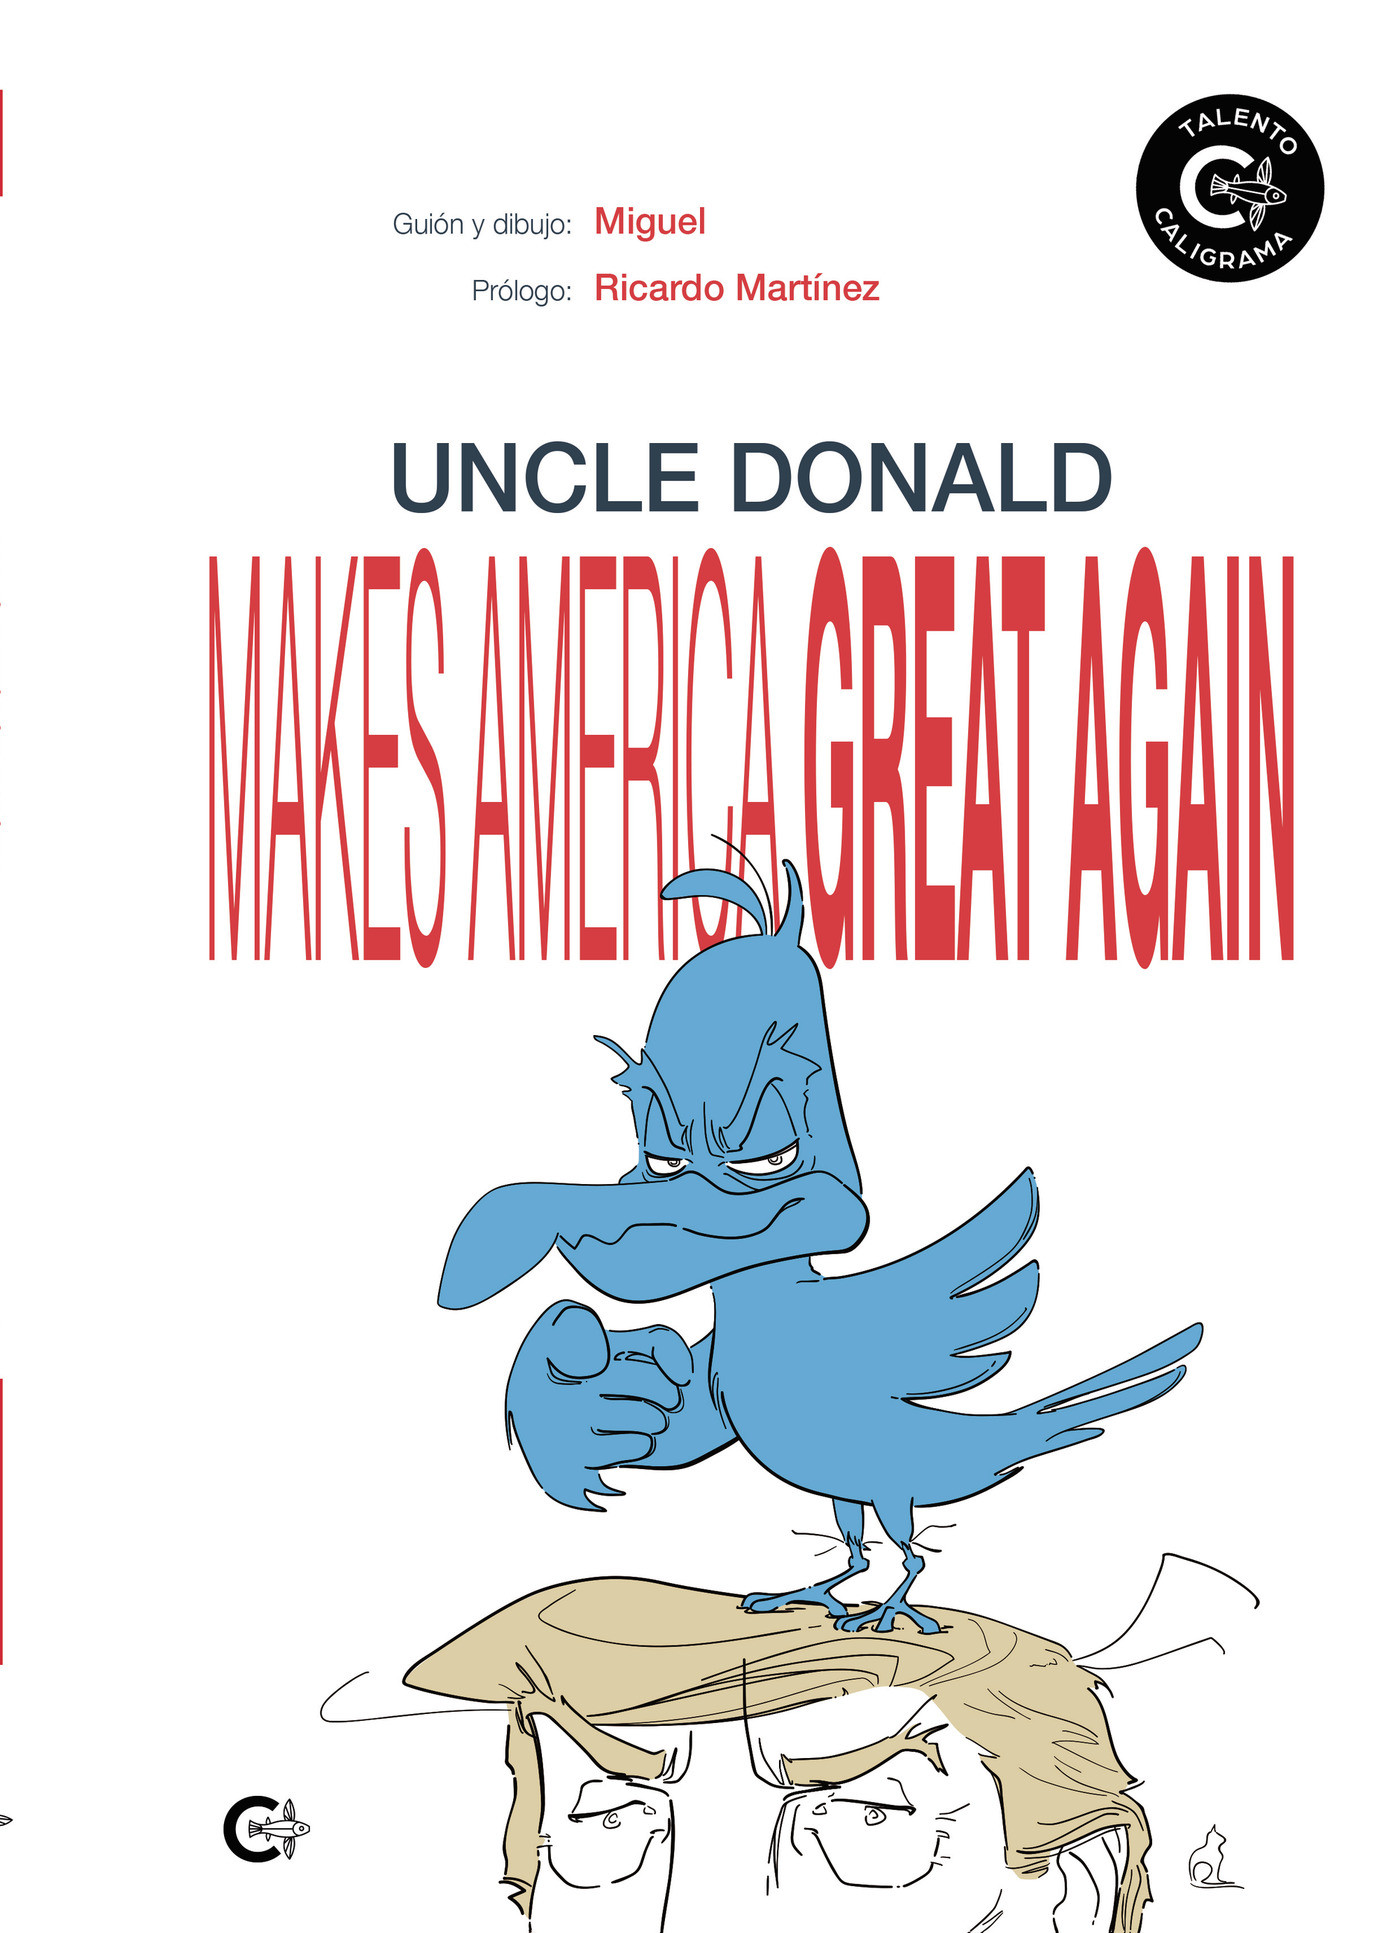 Uncle Donald makes America great again